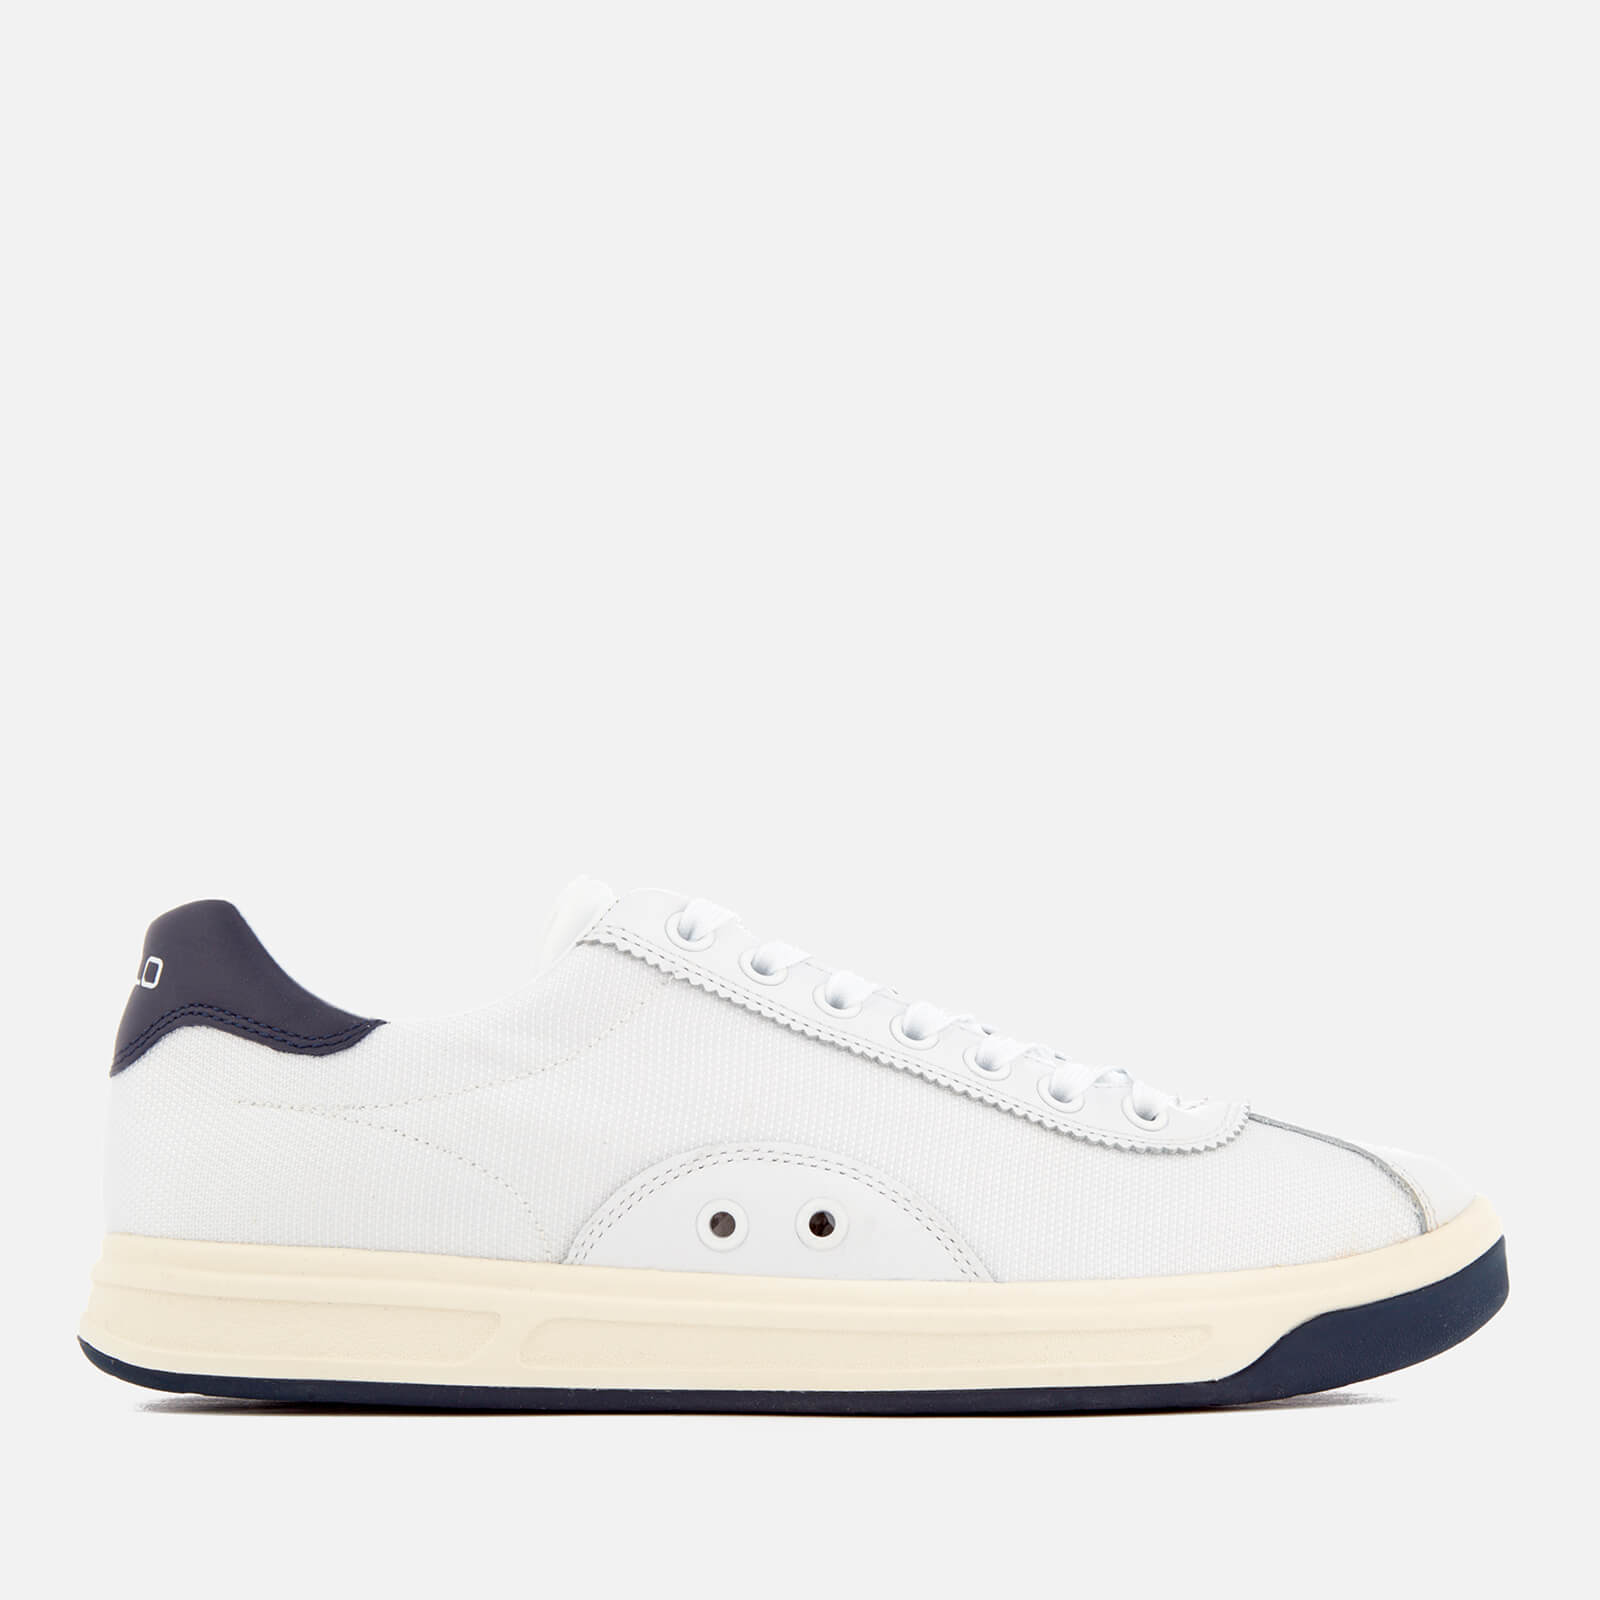 6d6bb7d31c9 Polo Ralph Lauren Men s Court 100 Leather Mesh Trainers - White Newport  Navy - Free UK Delivery over £50